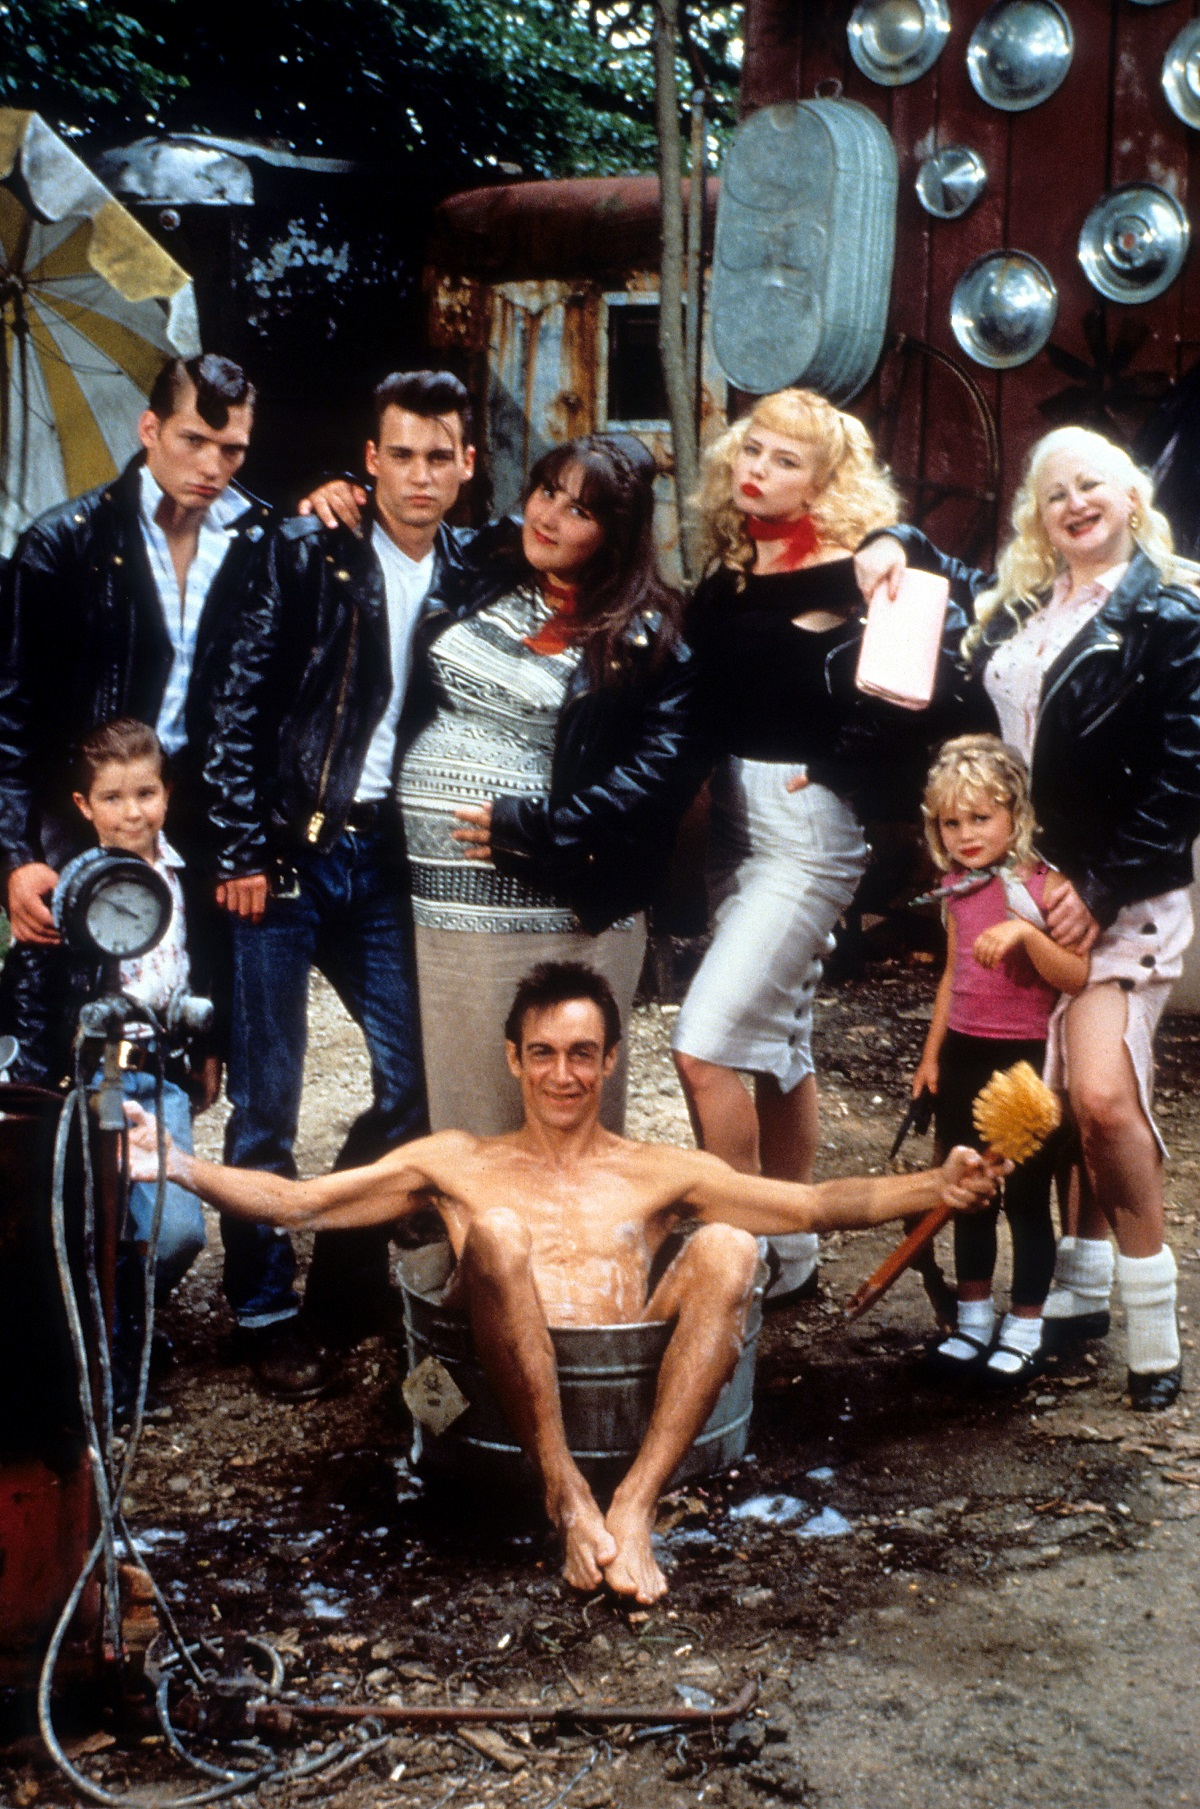 Johnny Depp, Traci Lords, Ricki Lake, and the rest of the 'Cry-Baby' cast